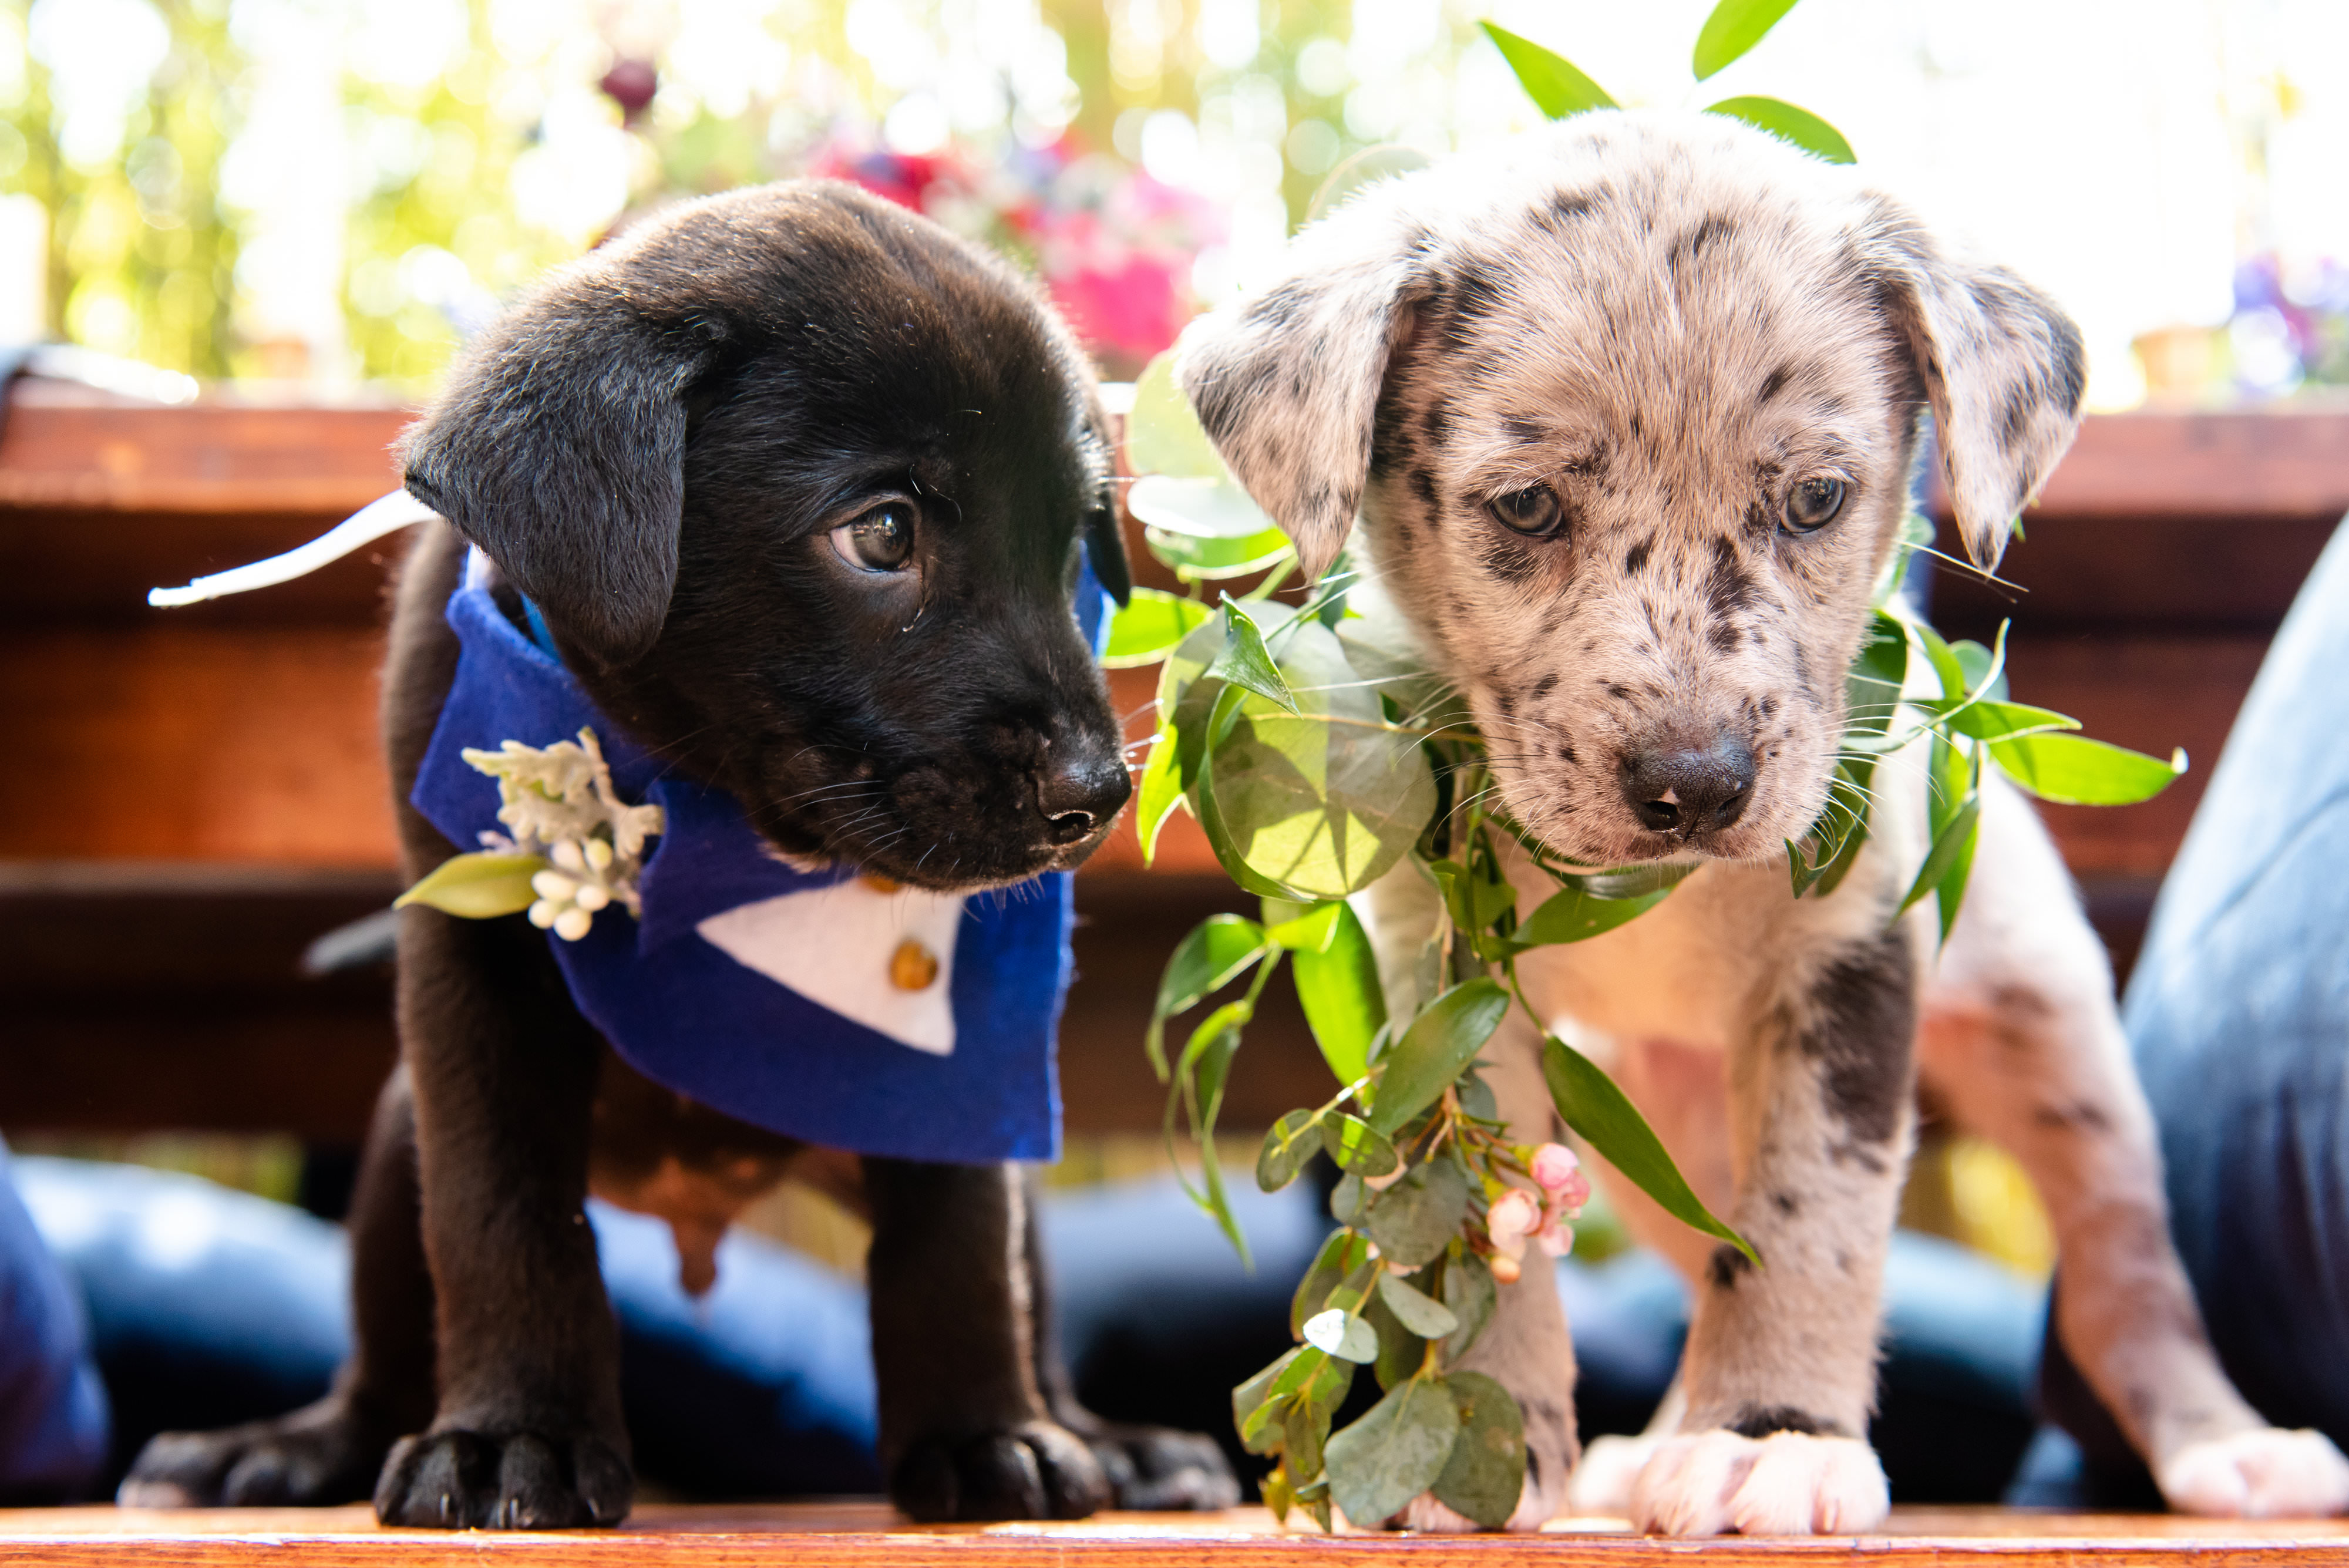 Black Puppy with Blue and White Tuxedo, Grey and White Speckled Puppy with Greenery Leaf Collars | Tampa Bay Wedding Photographer Caroline and Evan Photography | Pet Coordinators FairyTale Pet Care | Florist Monarch Events and Design | Designer and Planner Southern Glam Weddings & Events